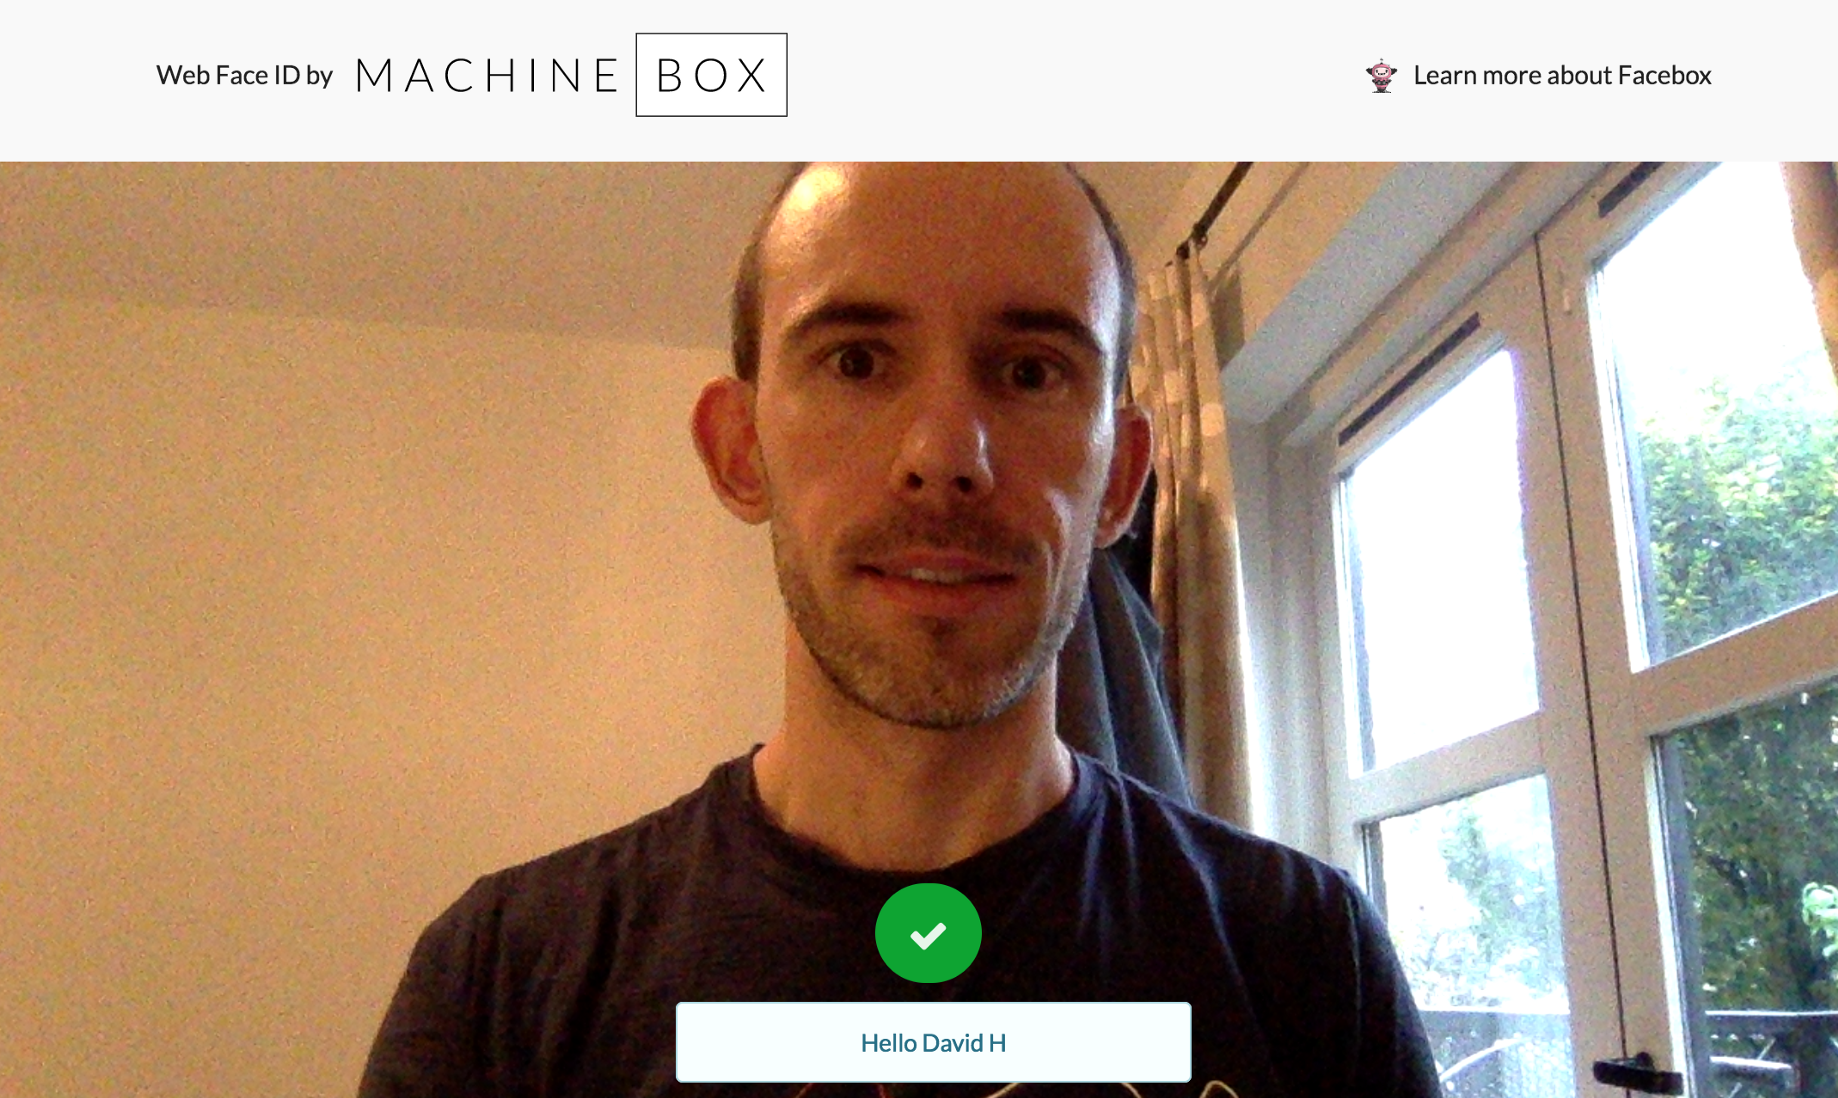 Introducing Web Face ID, how to use HTML5, Go and Facebox to verify